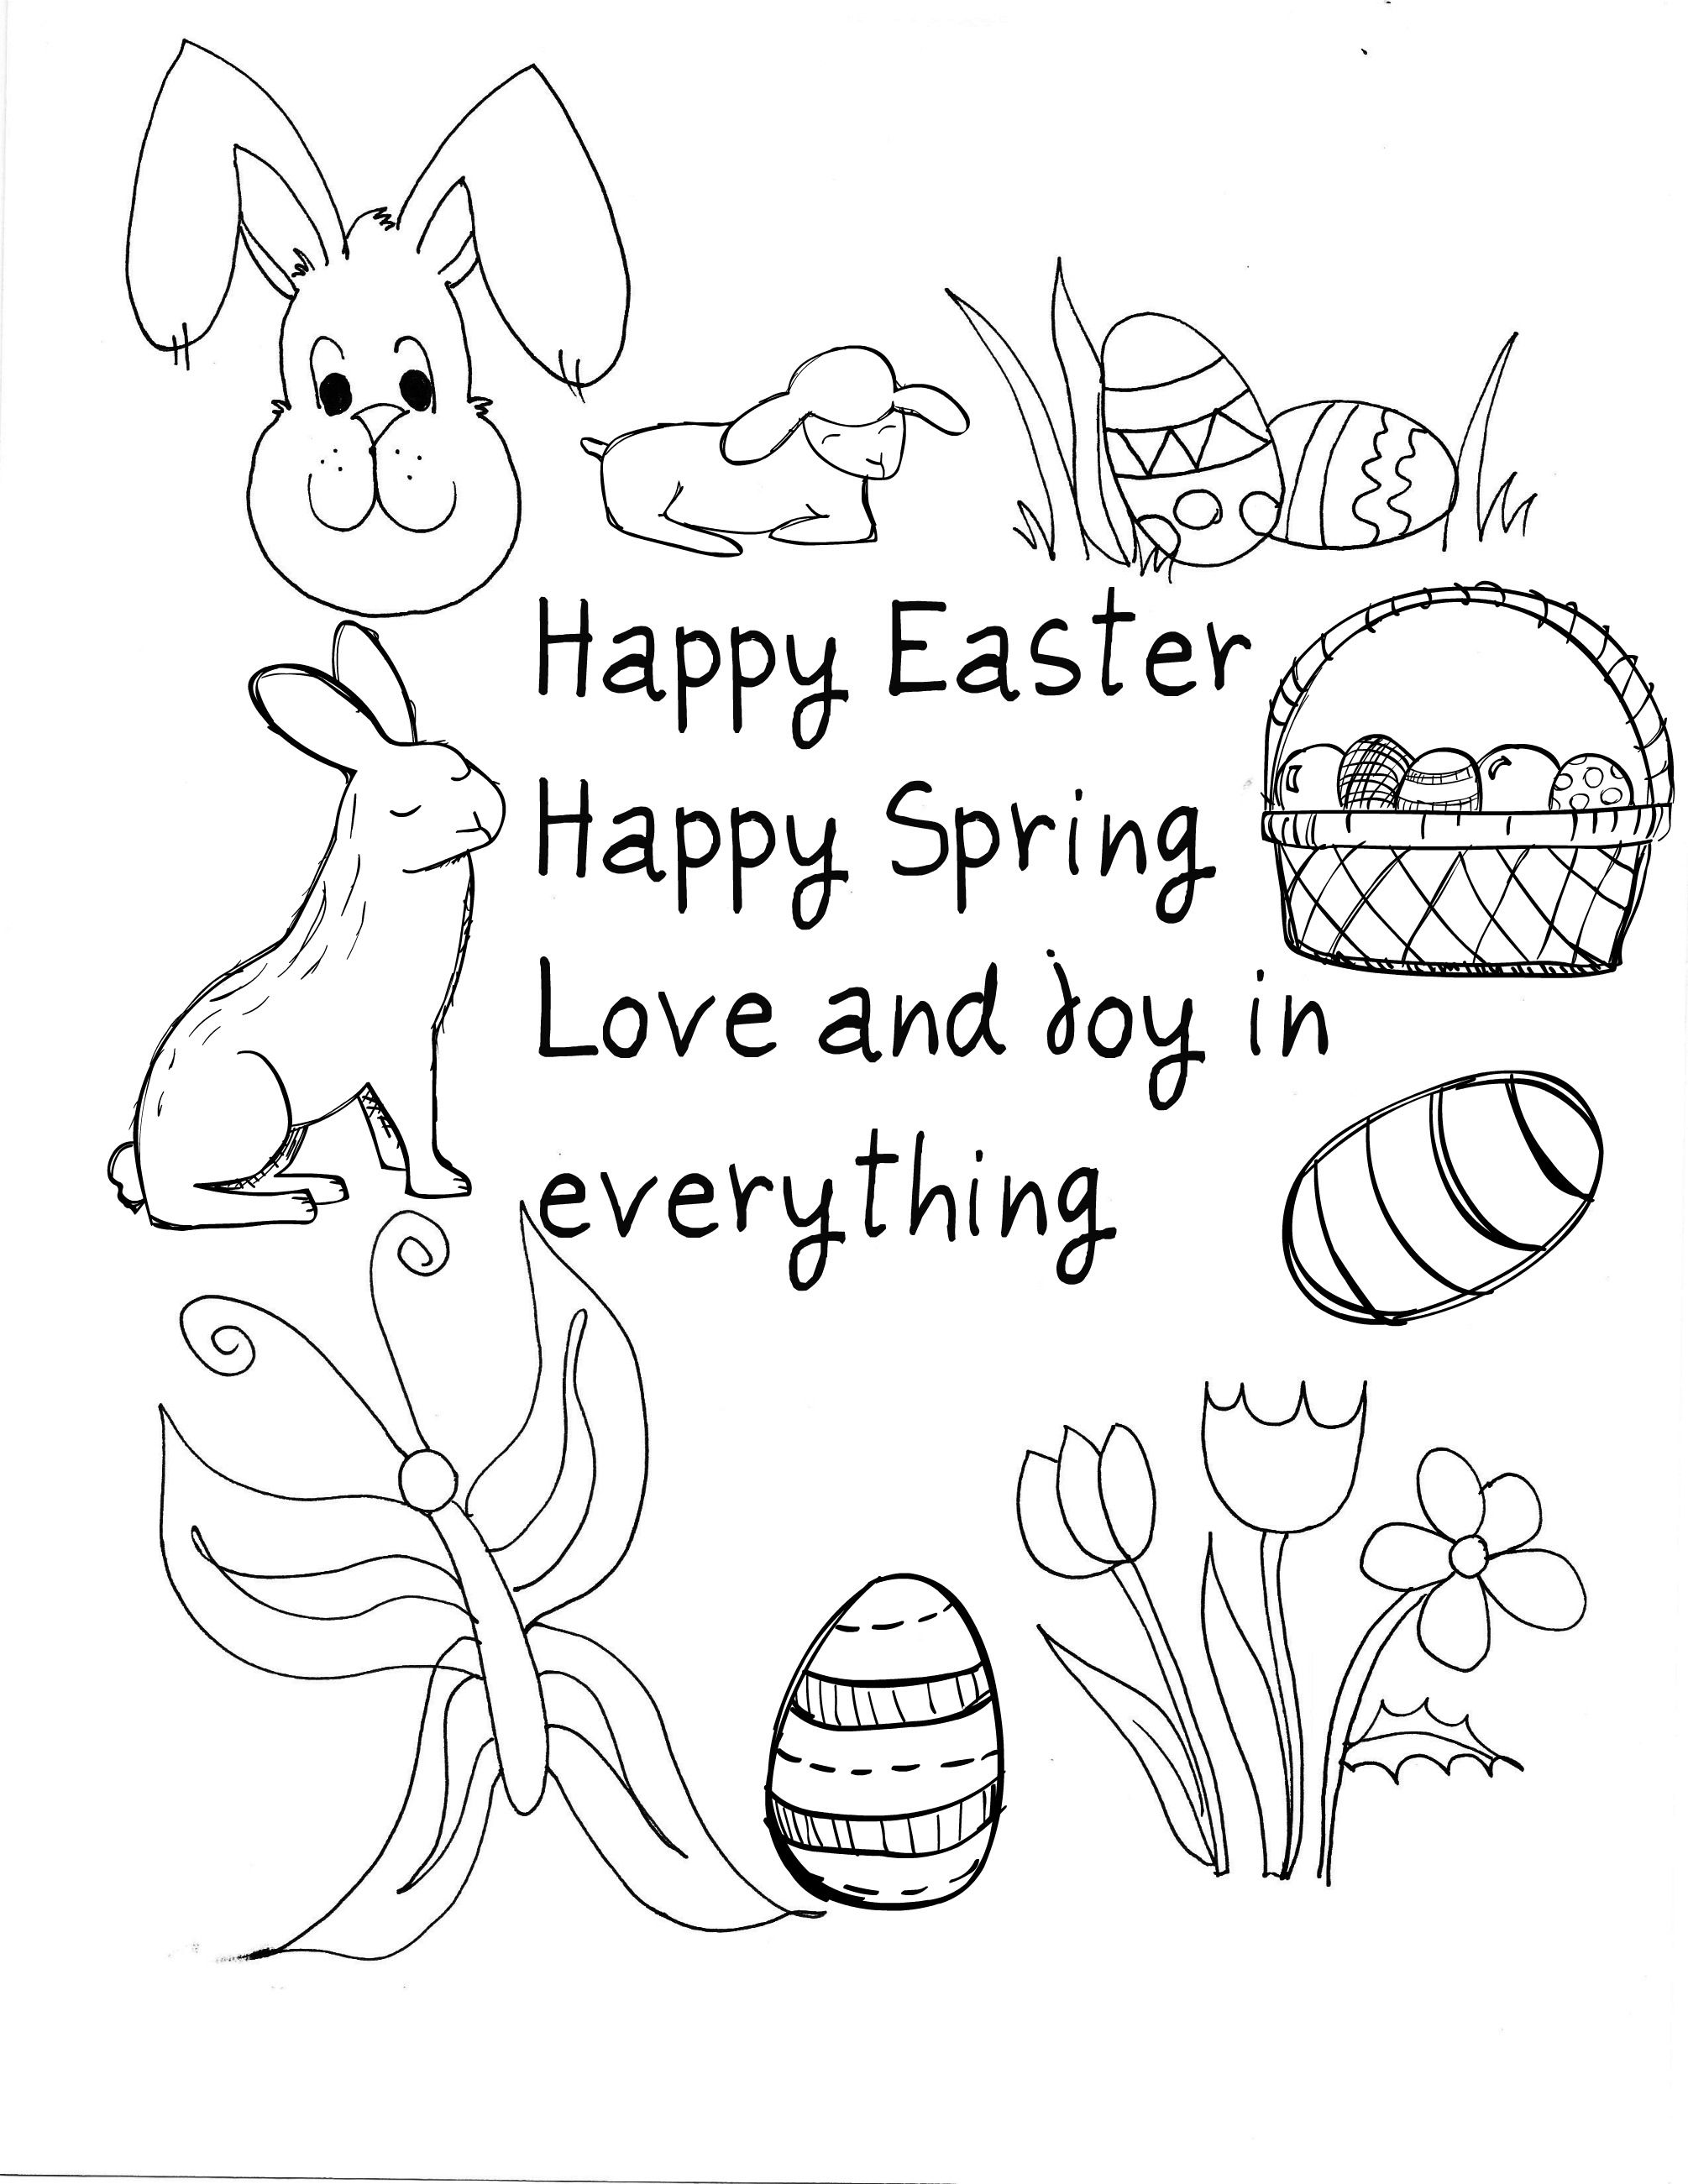 Free Easter And Spring Coloring Pages Archives